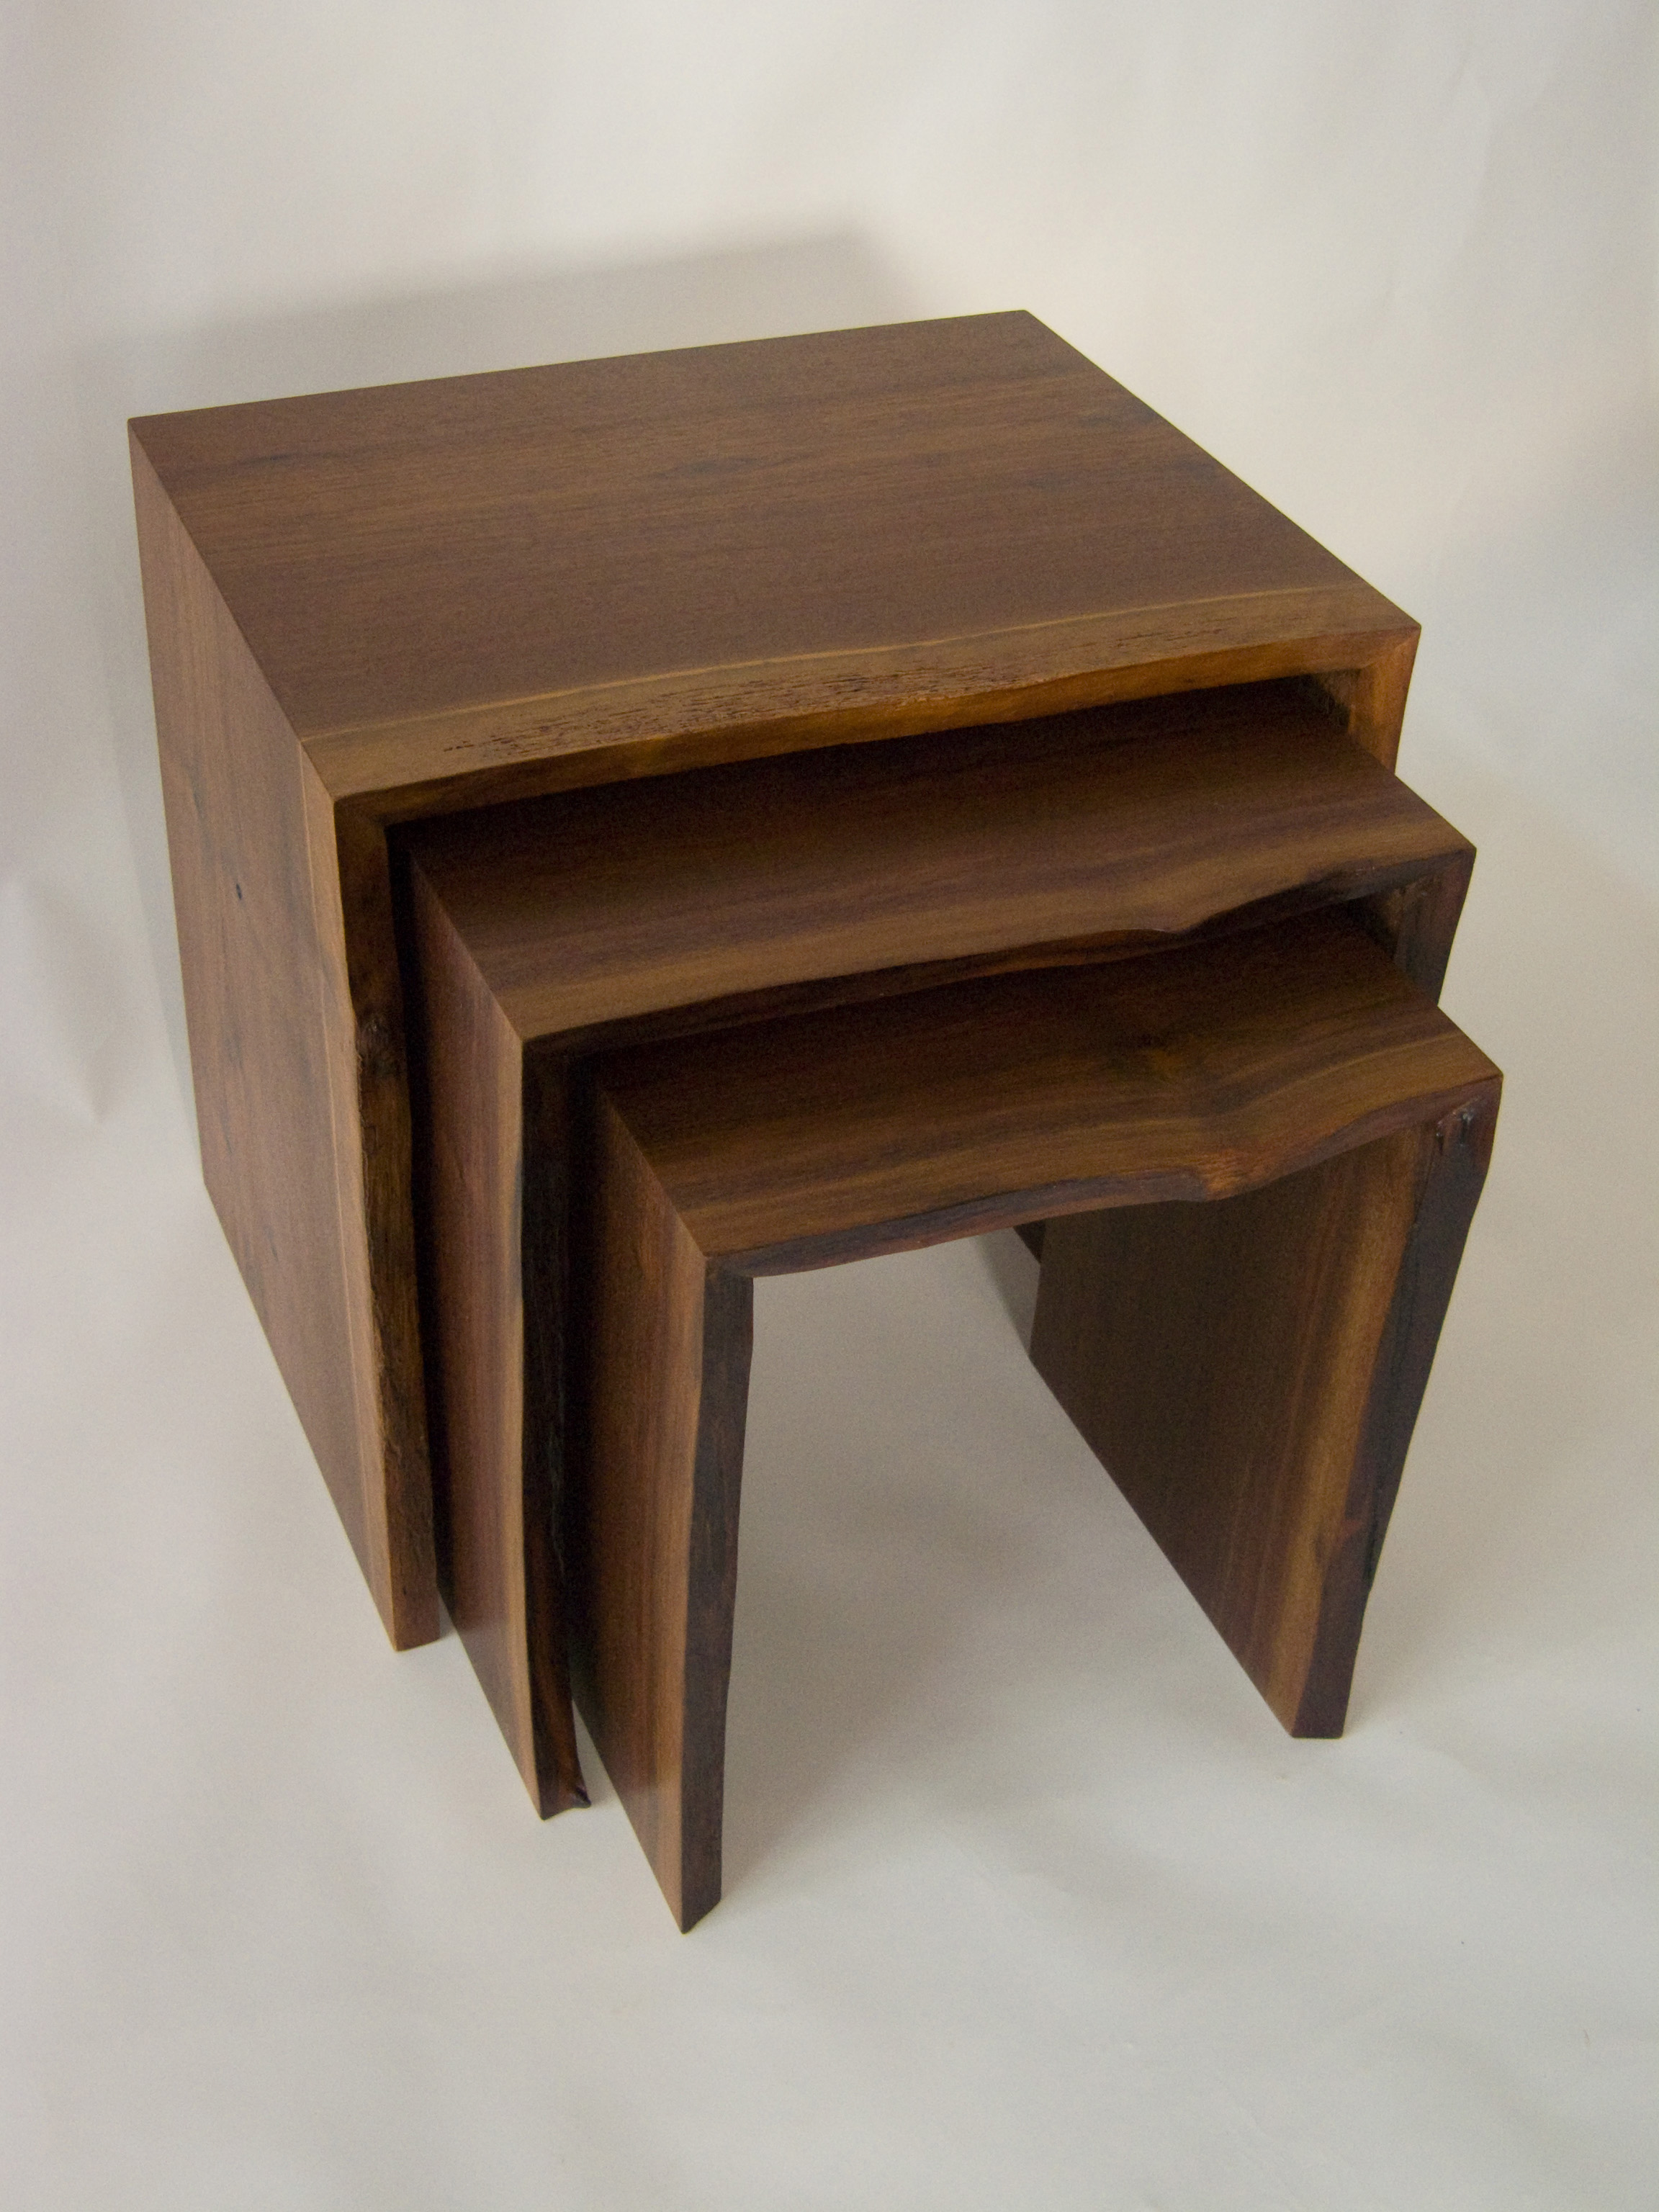 Making Wood Nesting Tables